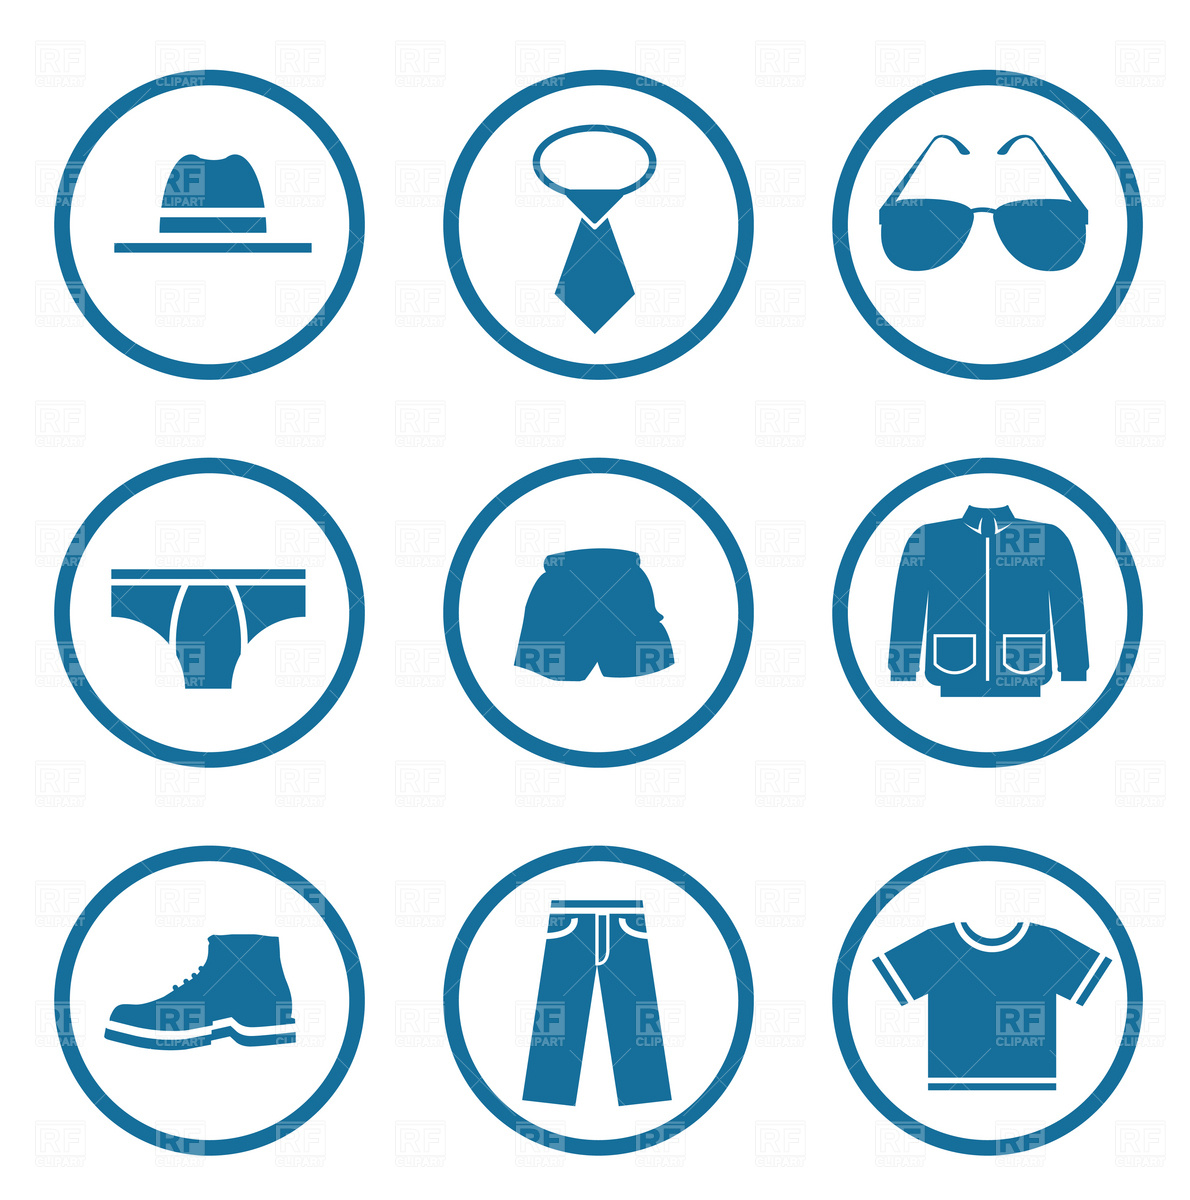 Royalty free clipart icons svg freeuse Free Clip Art Icons - Cliparts.co svg freeuse